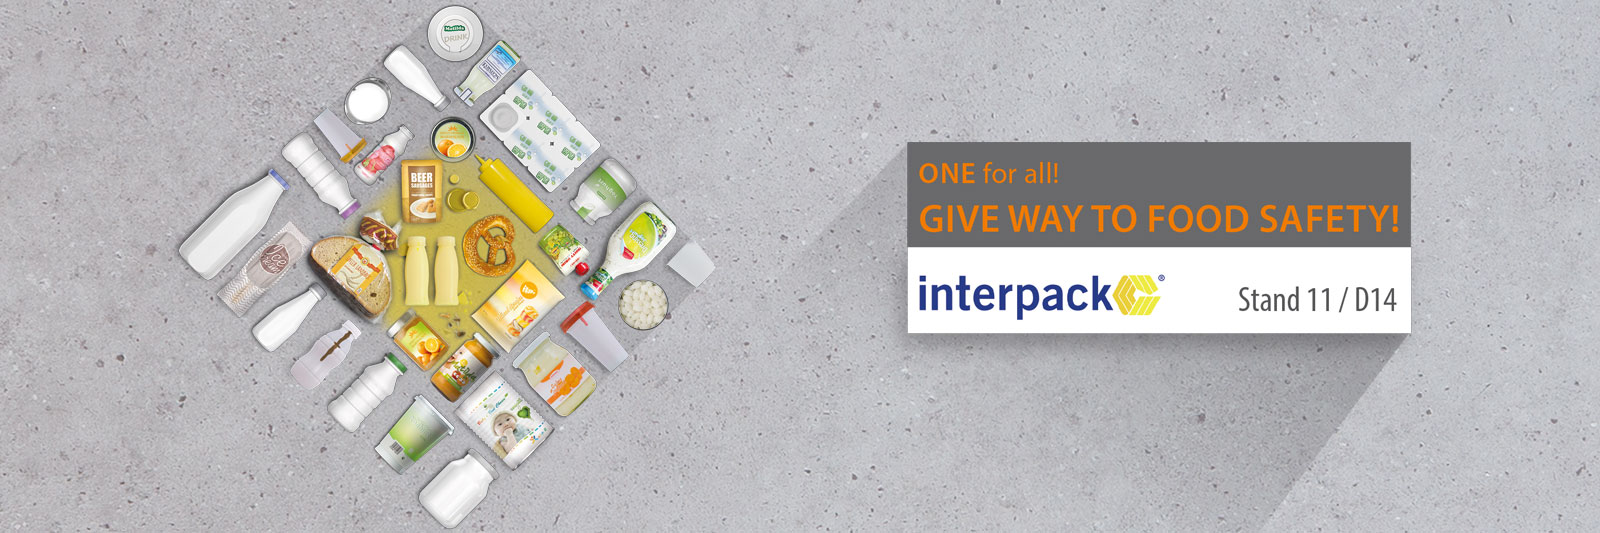 interpack_17_logo_l.jpg